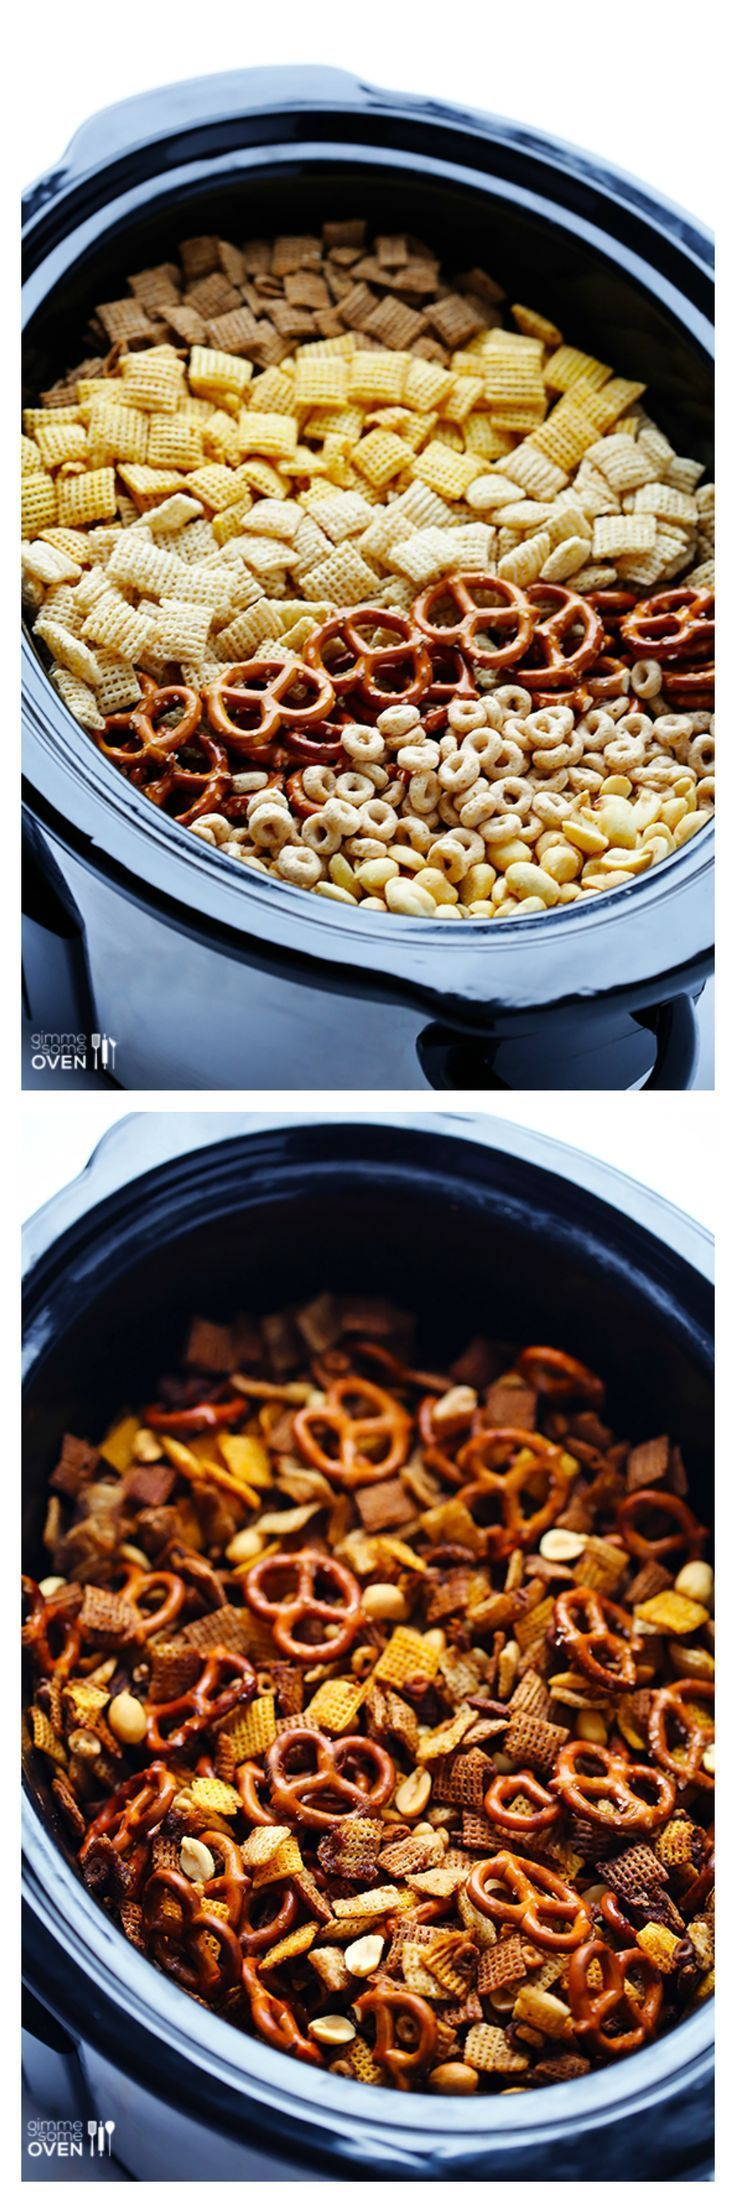 Slow Cooker Chex Mix -- the classic mix you love, made in your crock pot!   gimmesomeoven.com #slowcooker #crockpot